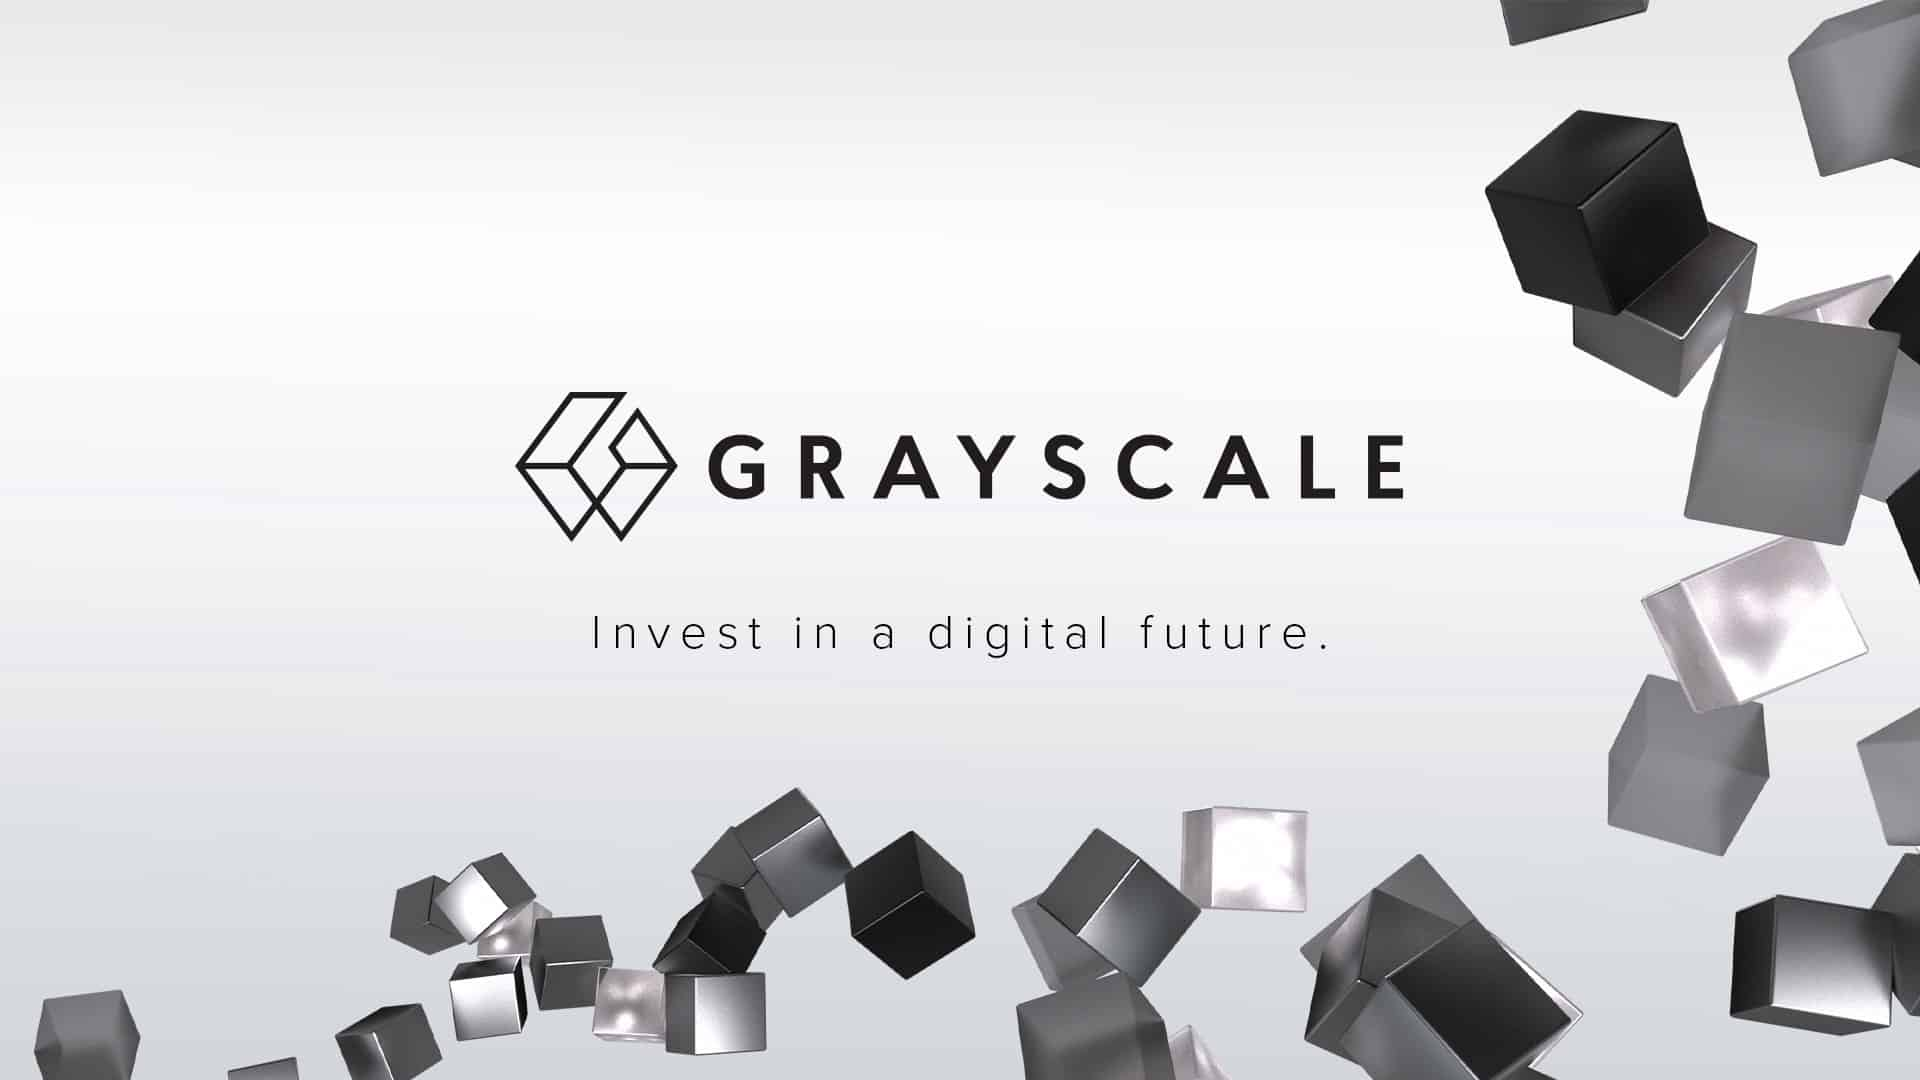 Grayscale is looking to add more coins — 13 new cryptos are being considered | Invezz